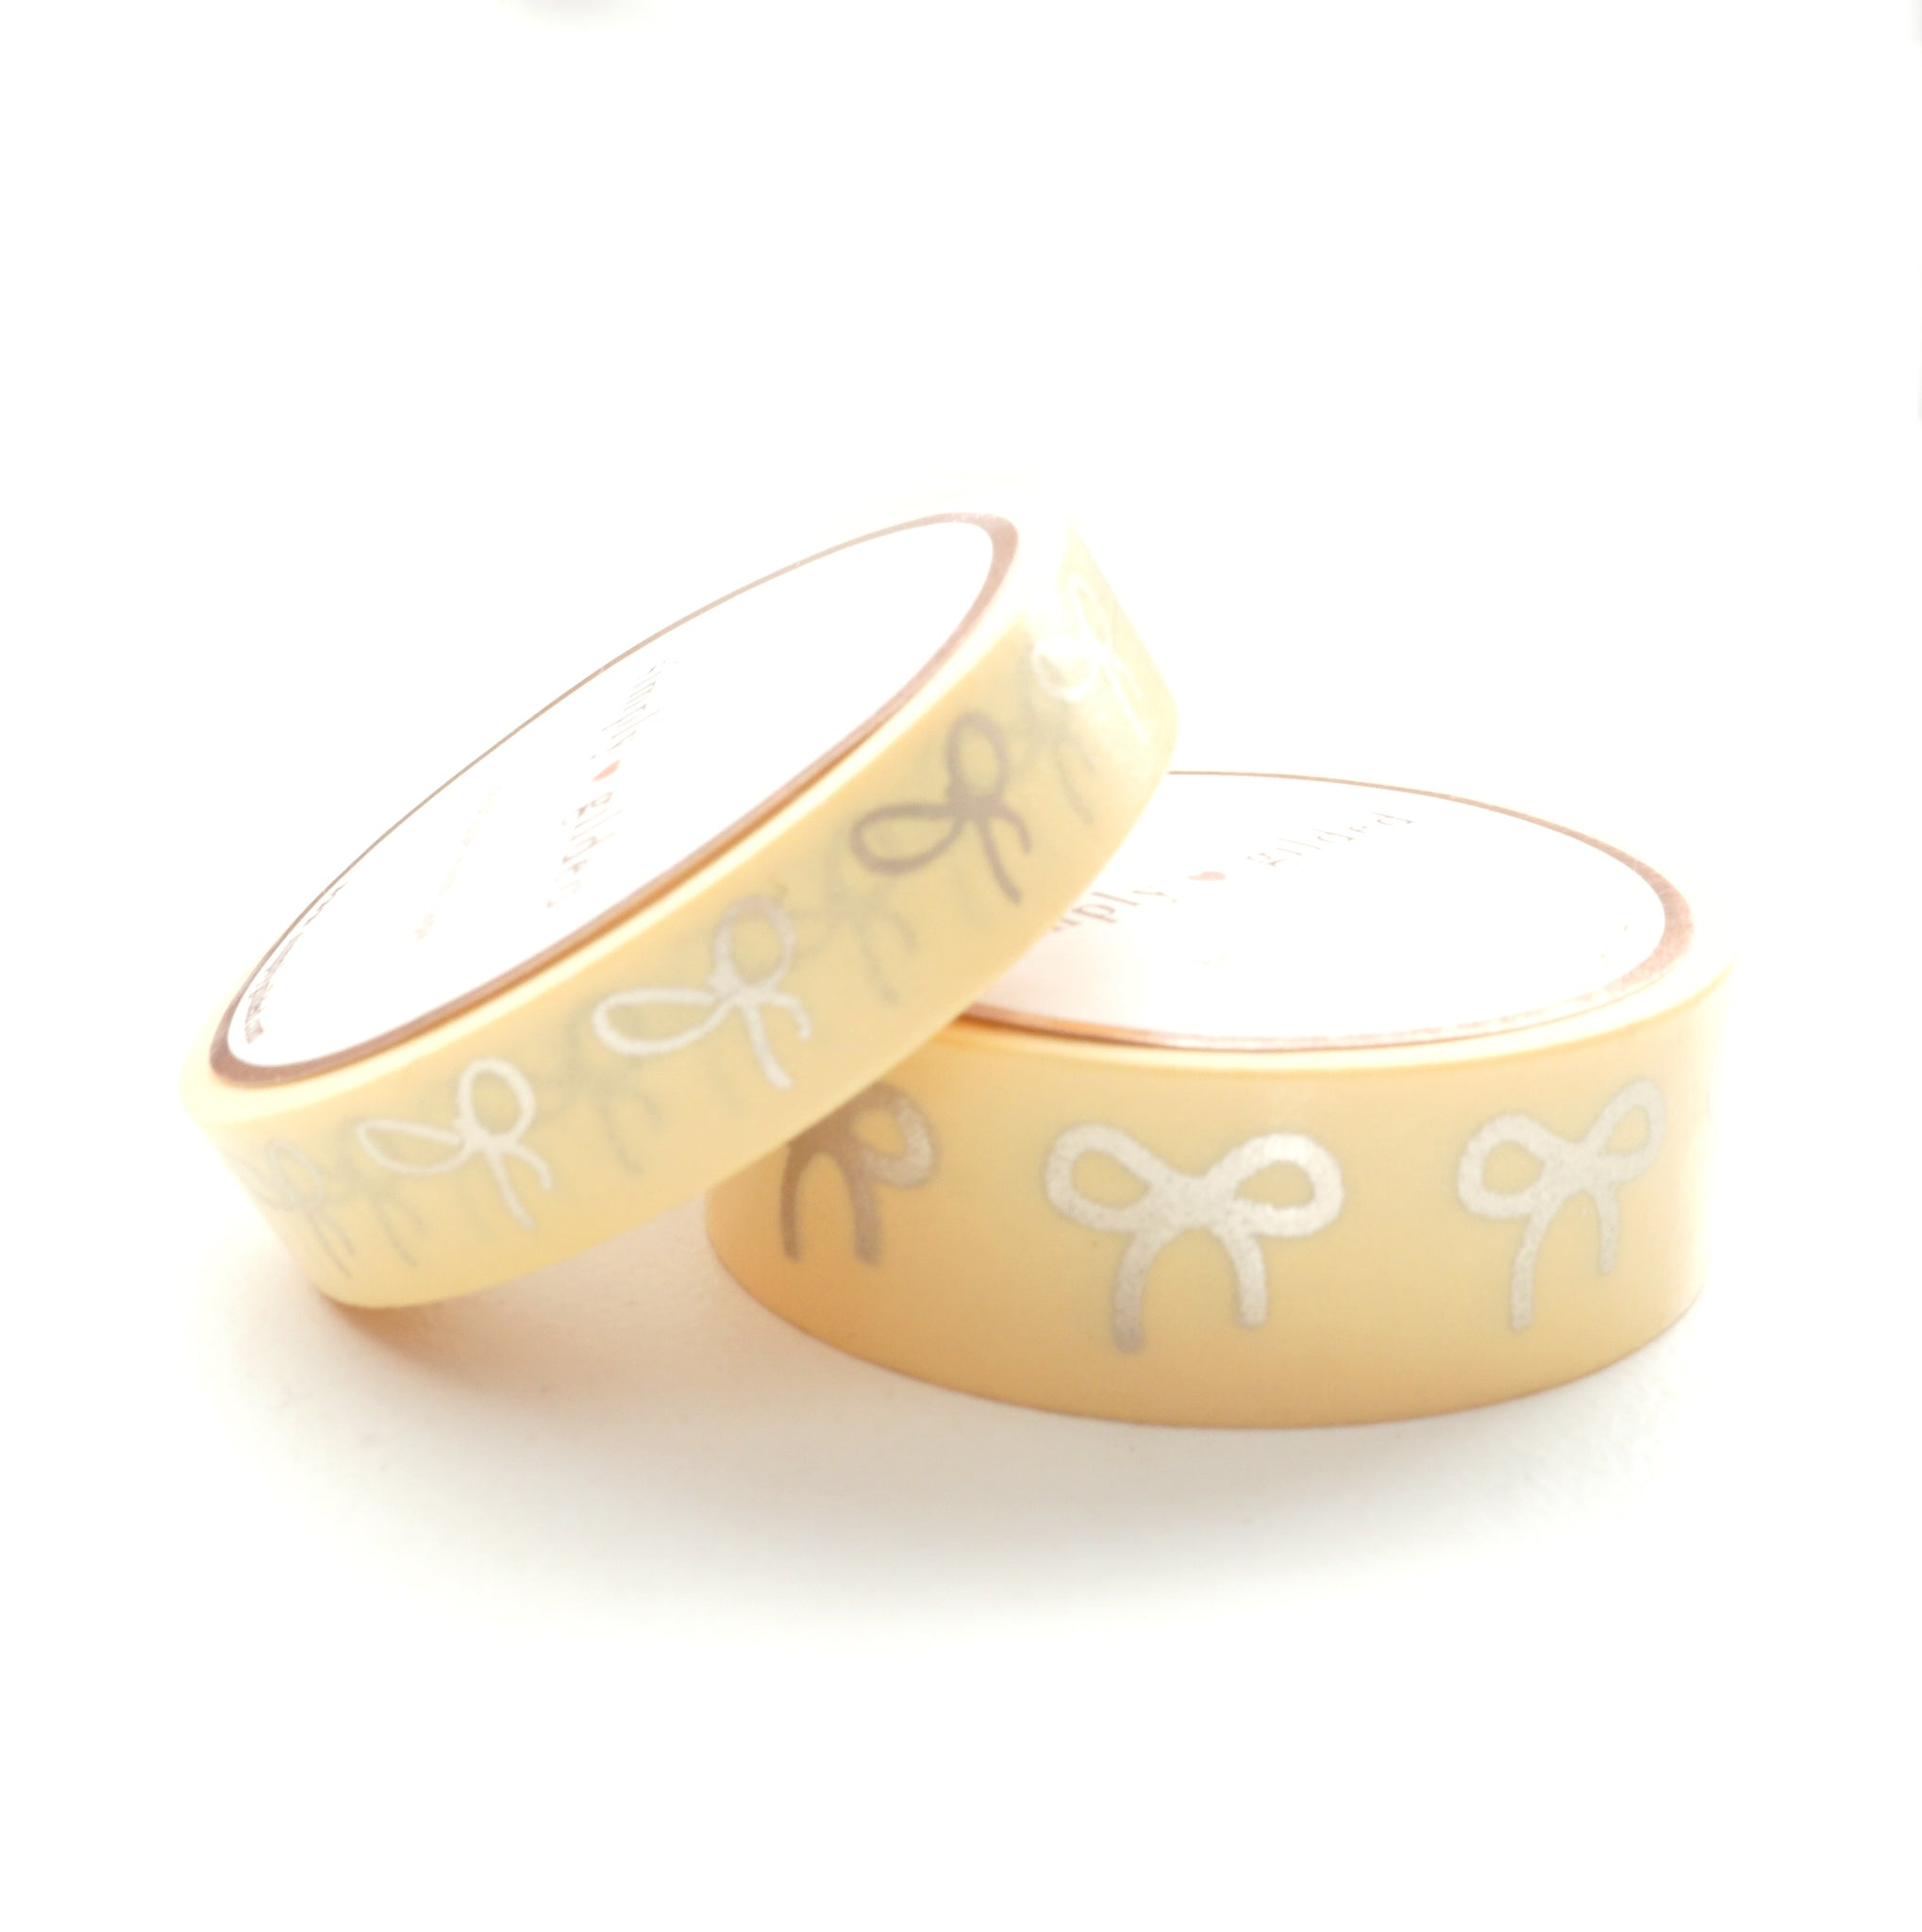 WASHI TAPE 15/10mm BOW set - Chic YELLOW + matte gold (May Release)